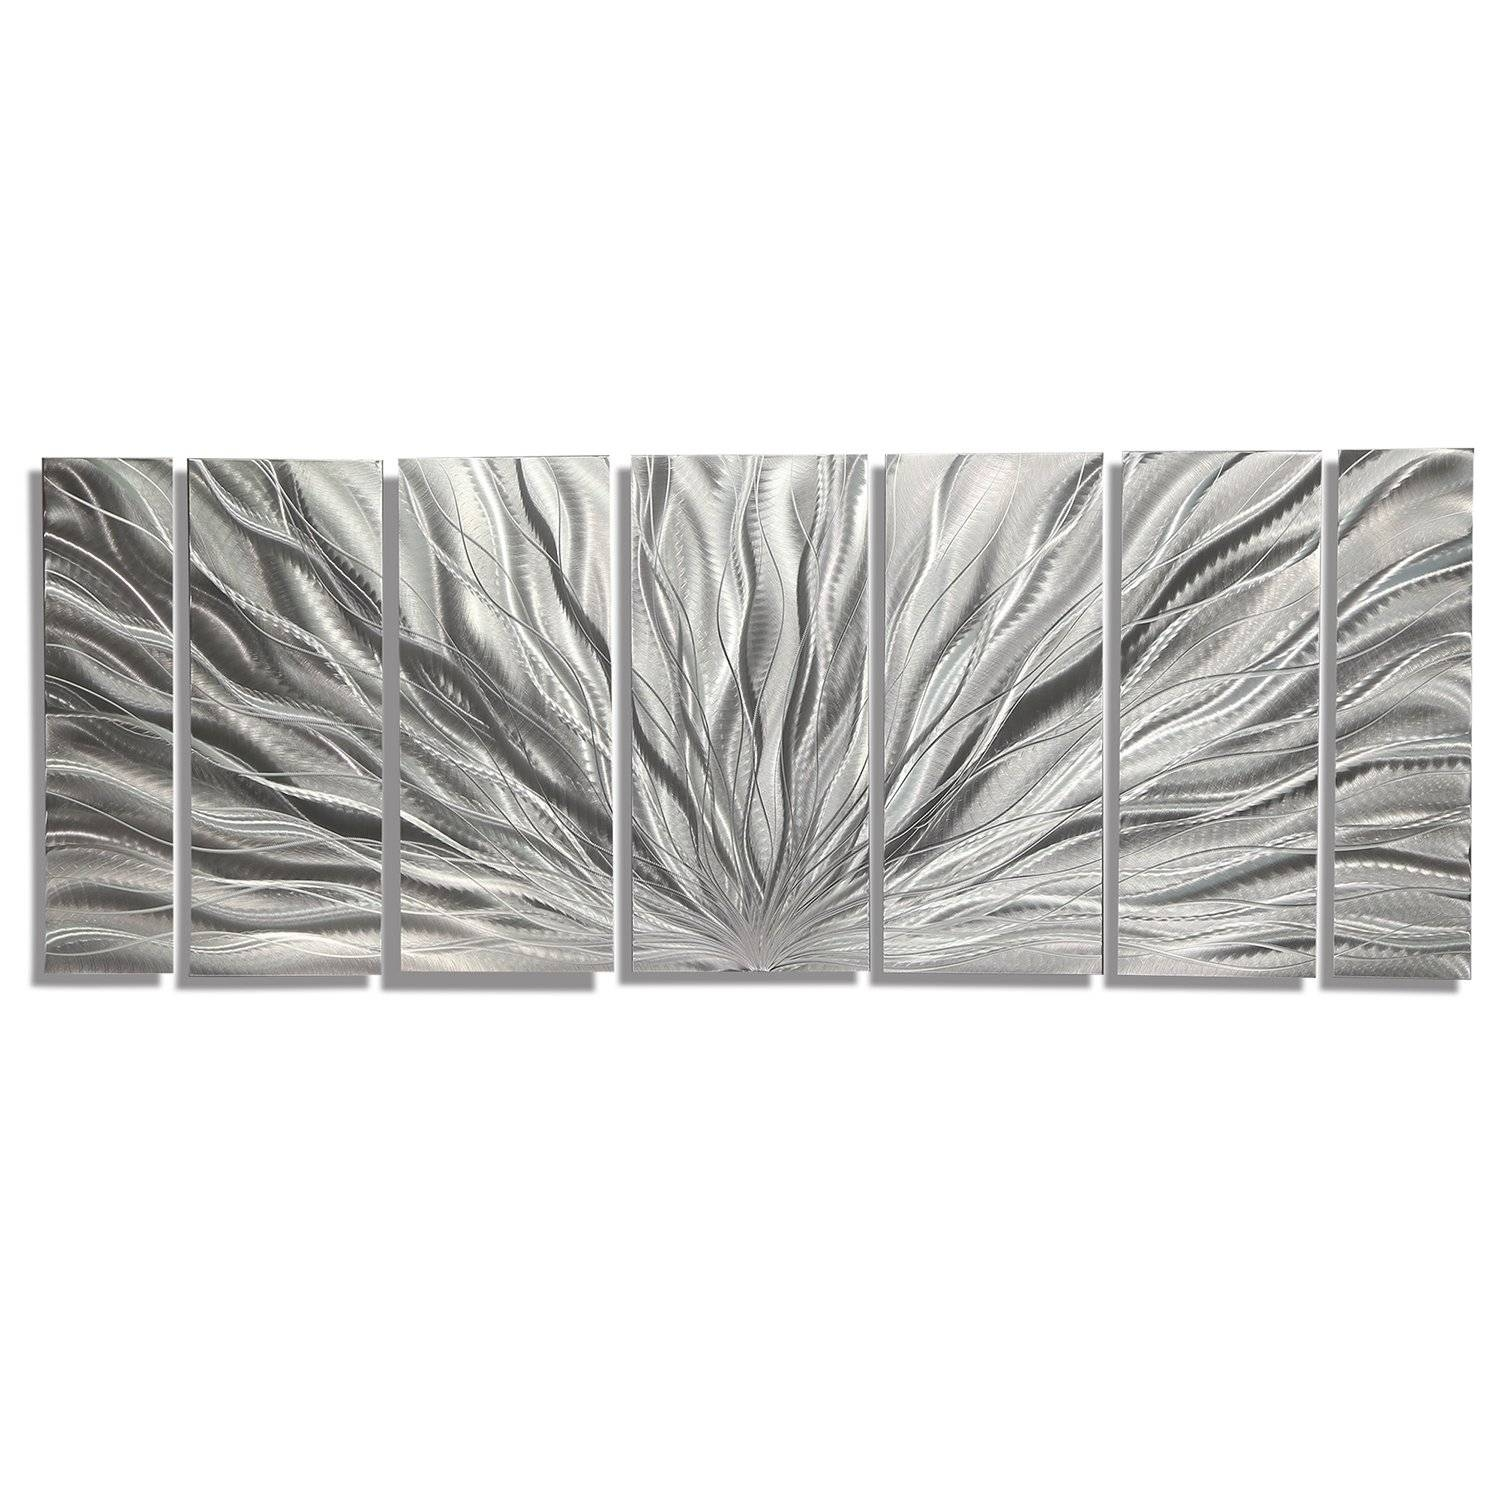 Ice Blue Etched Metal Wall Art – Super Tech For Most Popular Etched Metal Wall Art (View 6 of 20)